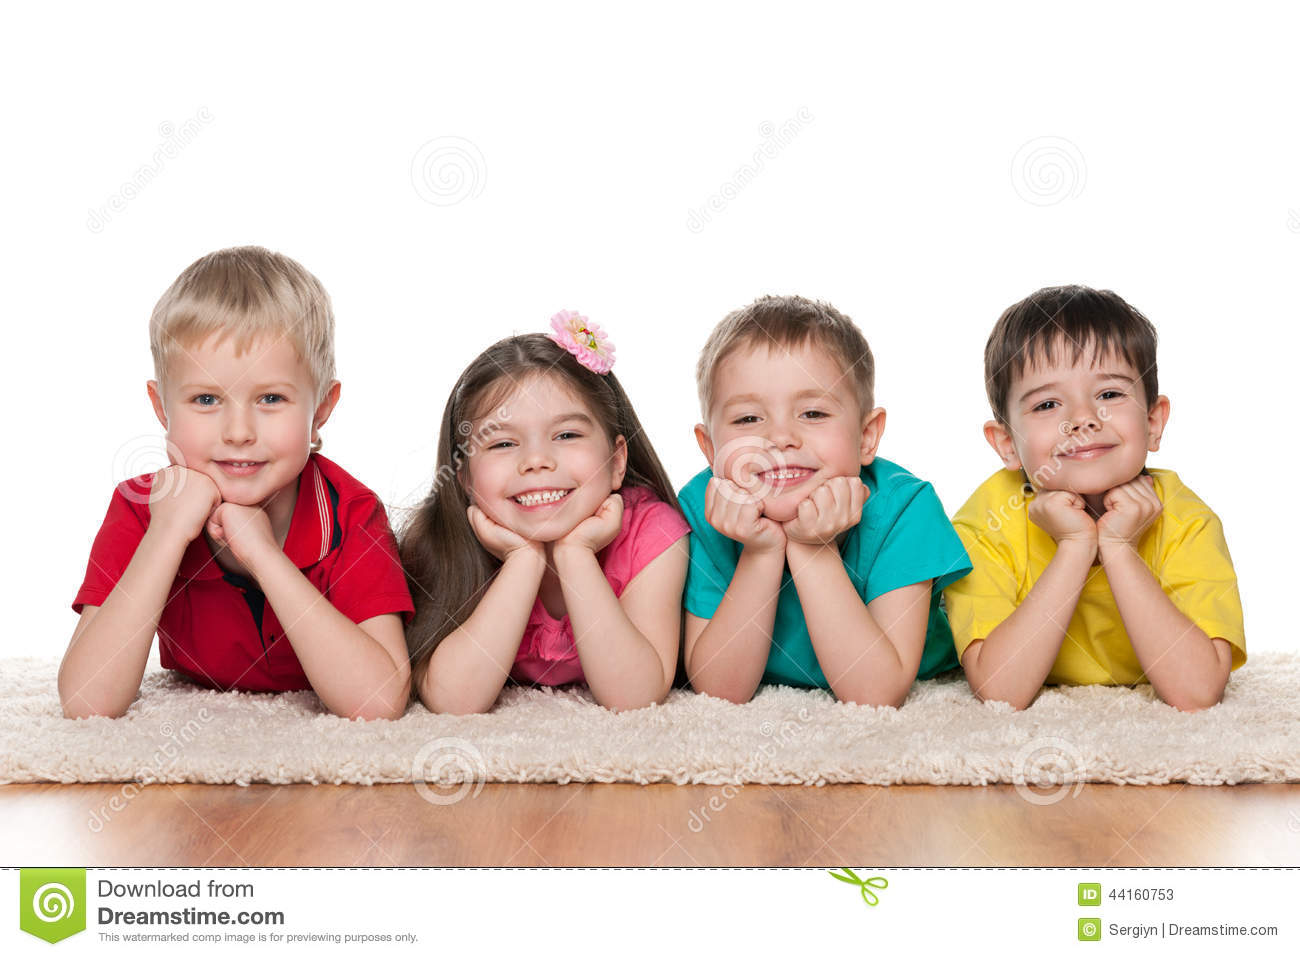 Https Www Dreamstime Com Stock Photo Happy Children White Carpet Four Resting Image44160753